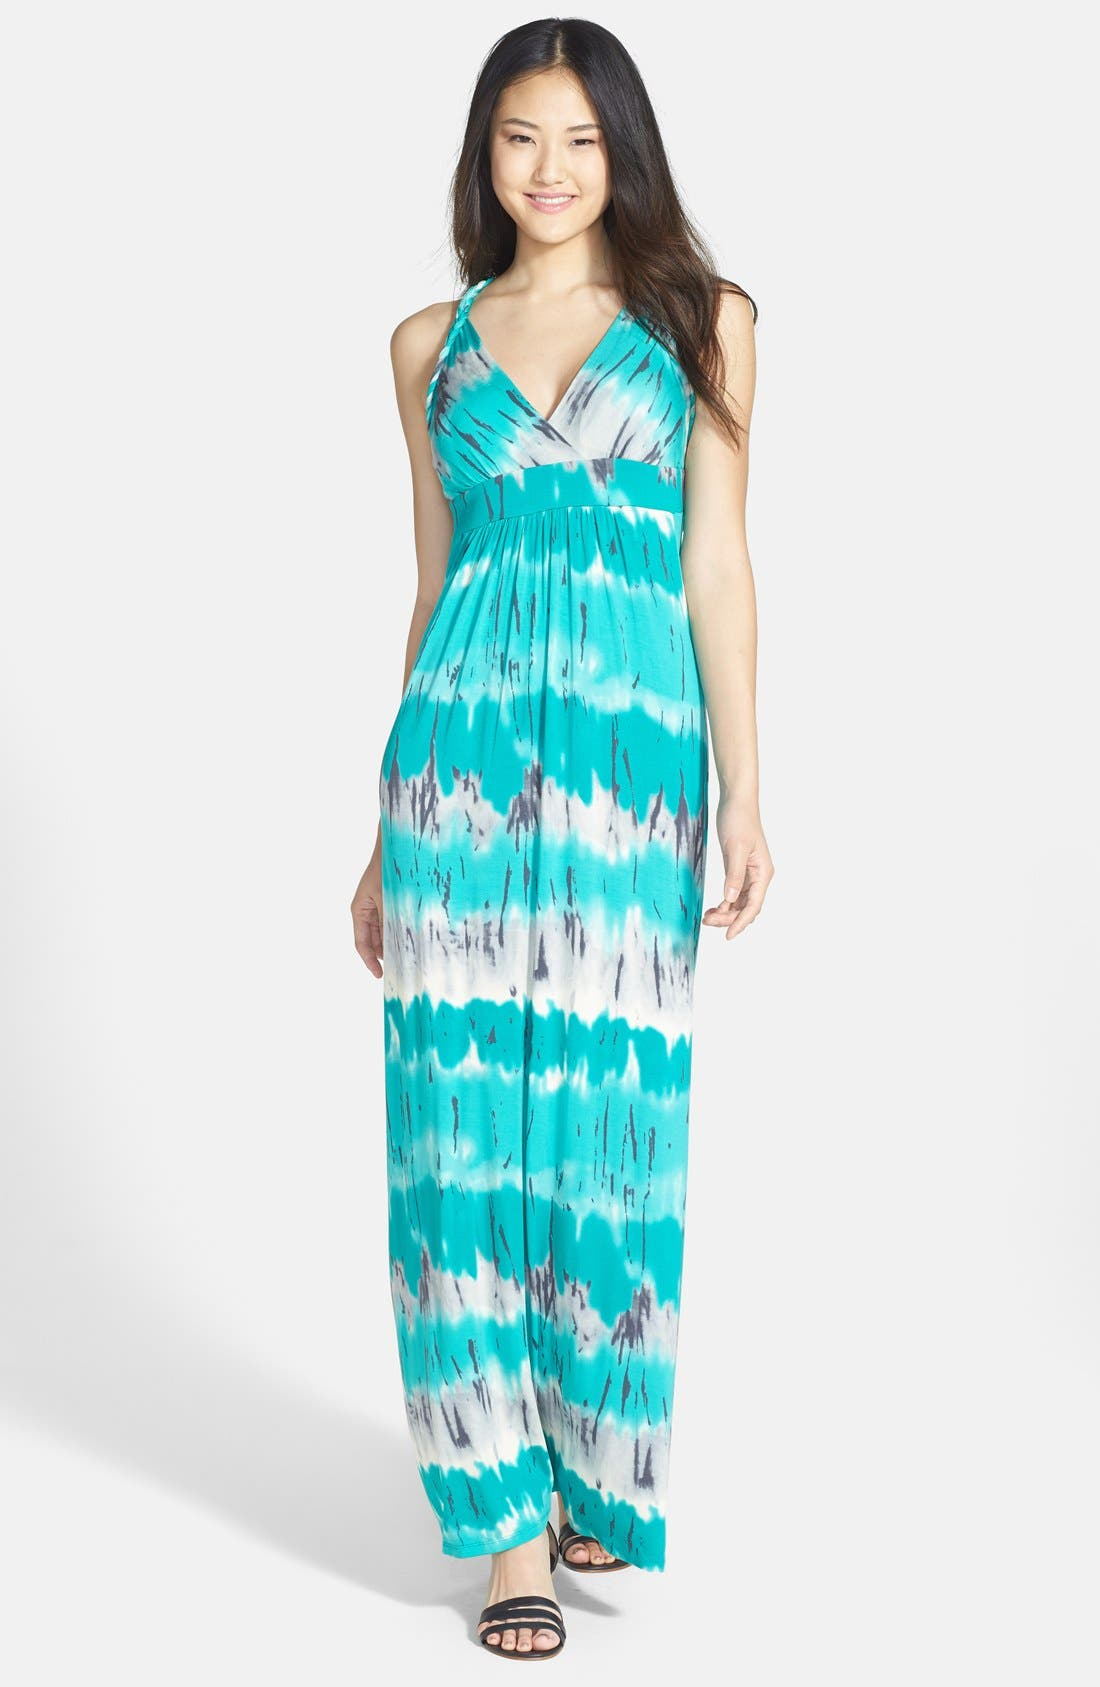 Alternate Image 1 Selected - Felicity & Coco Ombré Jersey Maxi Dress (Nordstrom Exclusive)